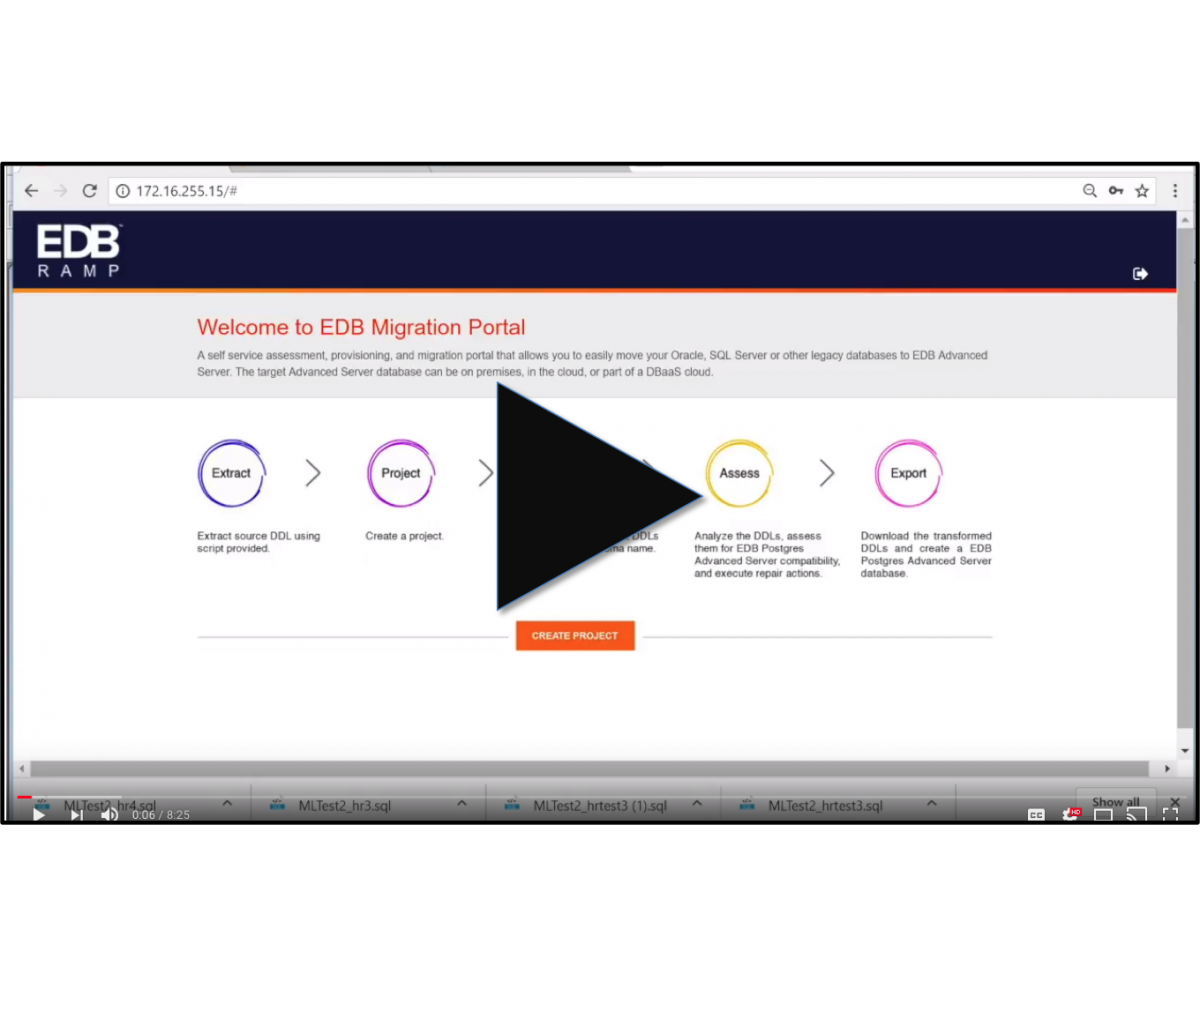 Click to view a demo of the migration portal